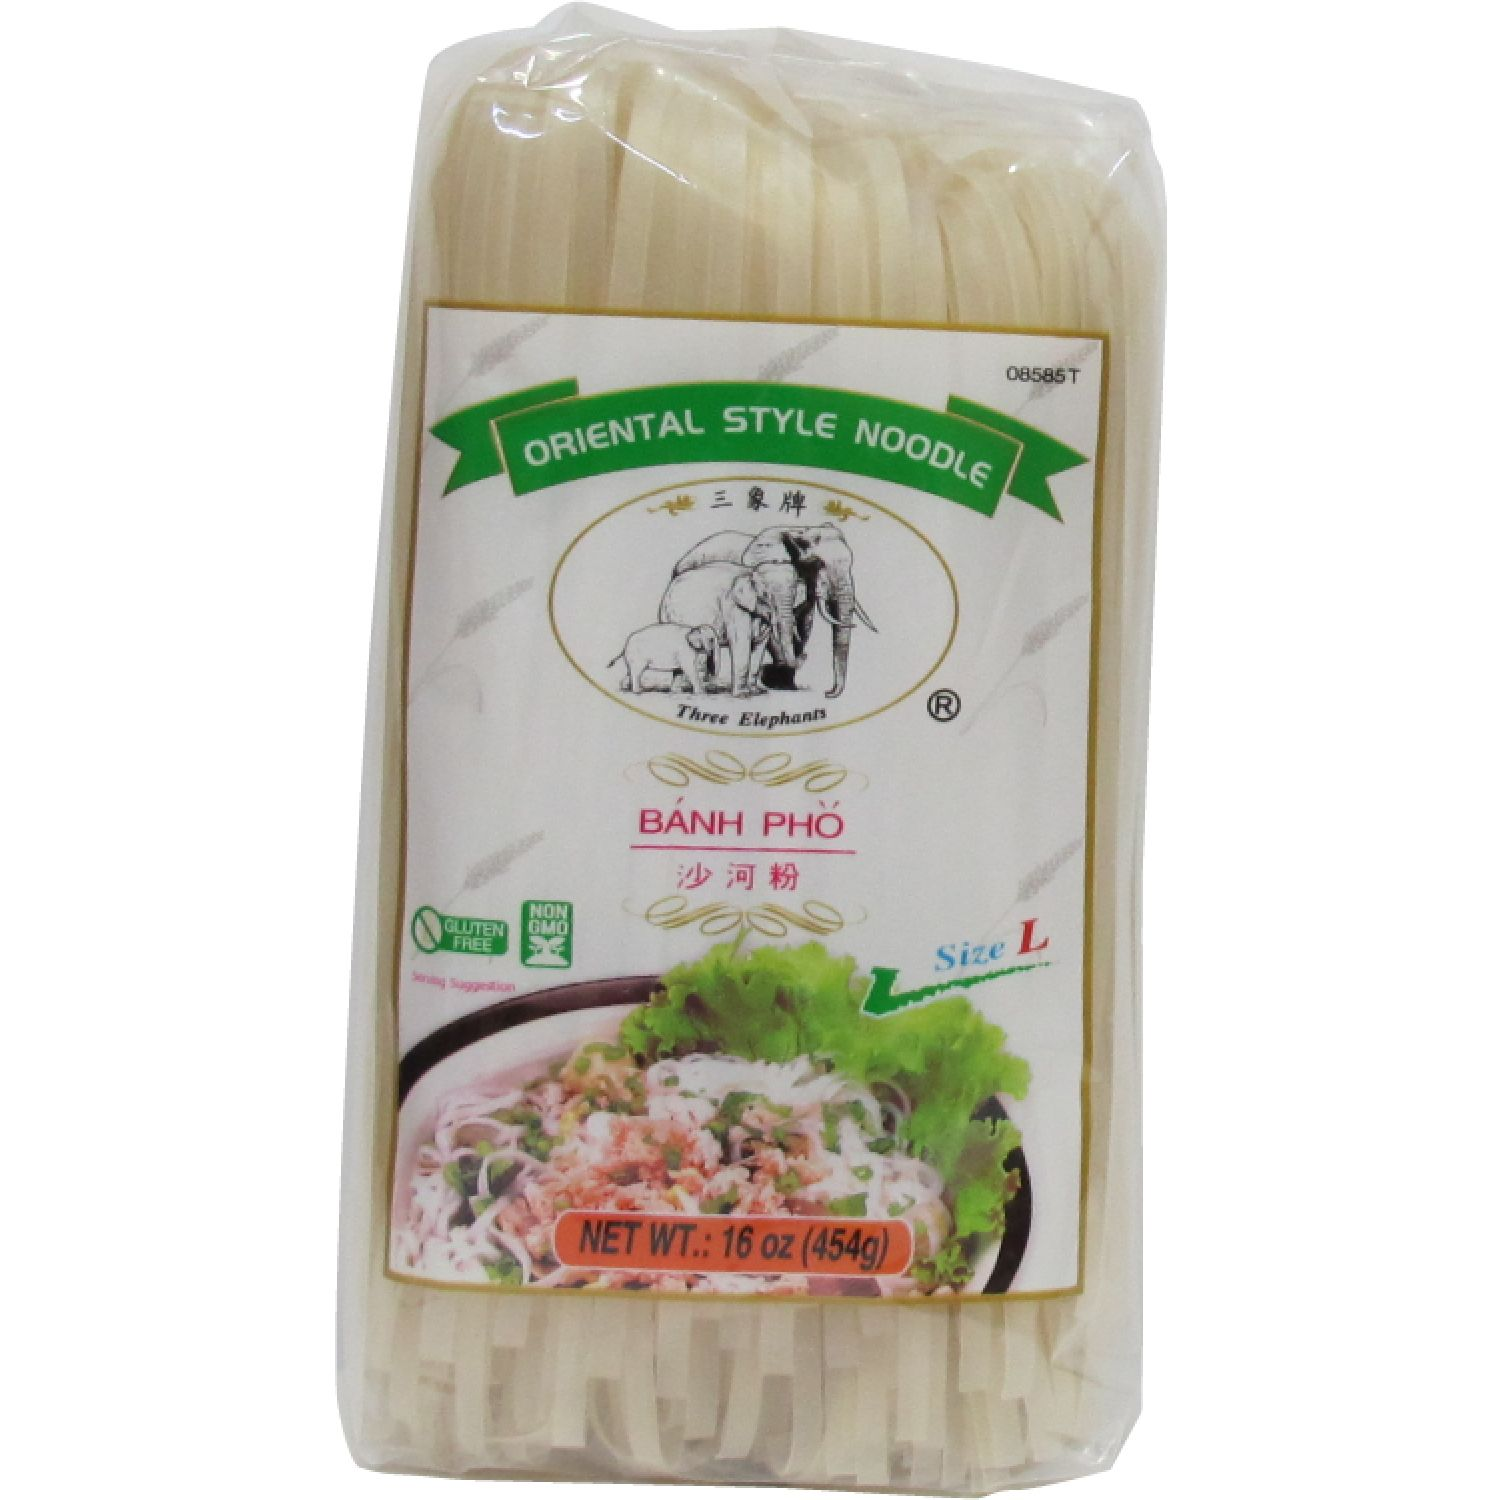 THREE ELEPHANTS FIDEO DE ARROZ (L) 1LB PAQ Sin color Fideos de Arroz